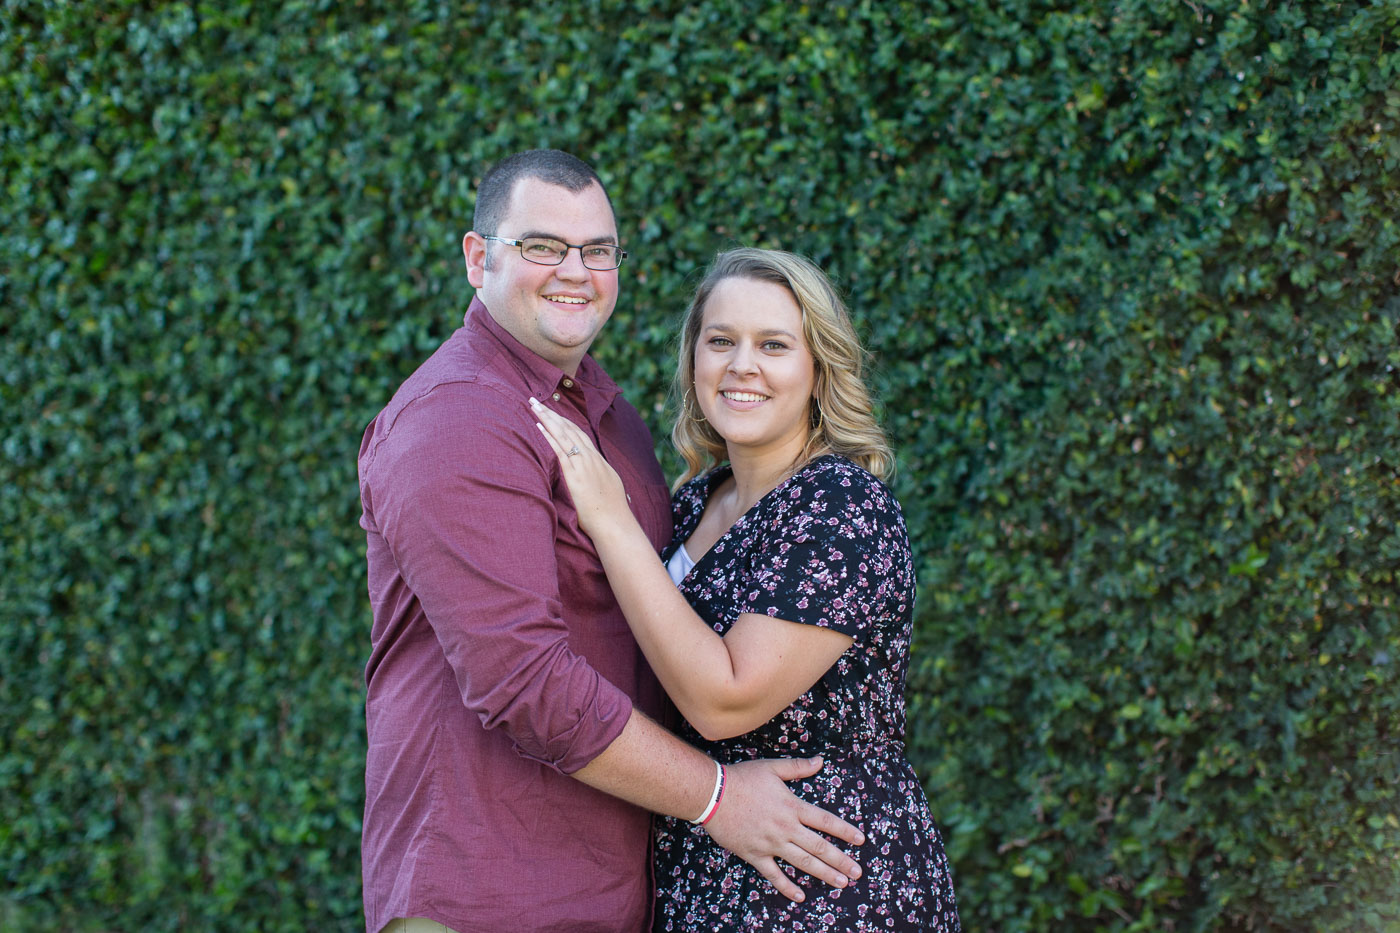 Andrew and Jaymee posing in front of a beautiful green wall during their Huntington beach state park engagement session